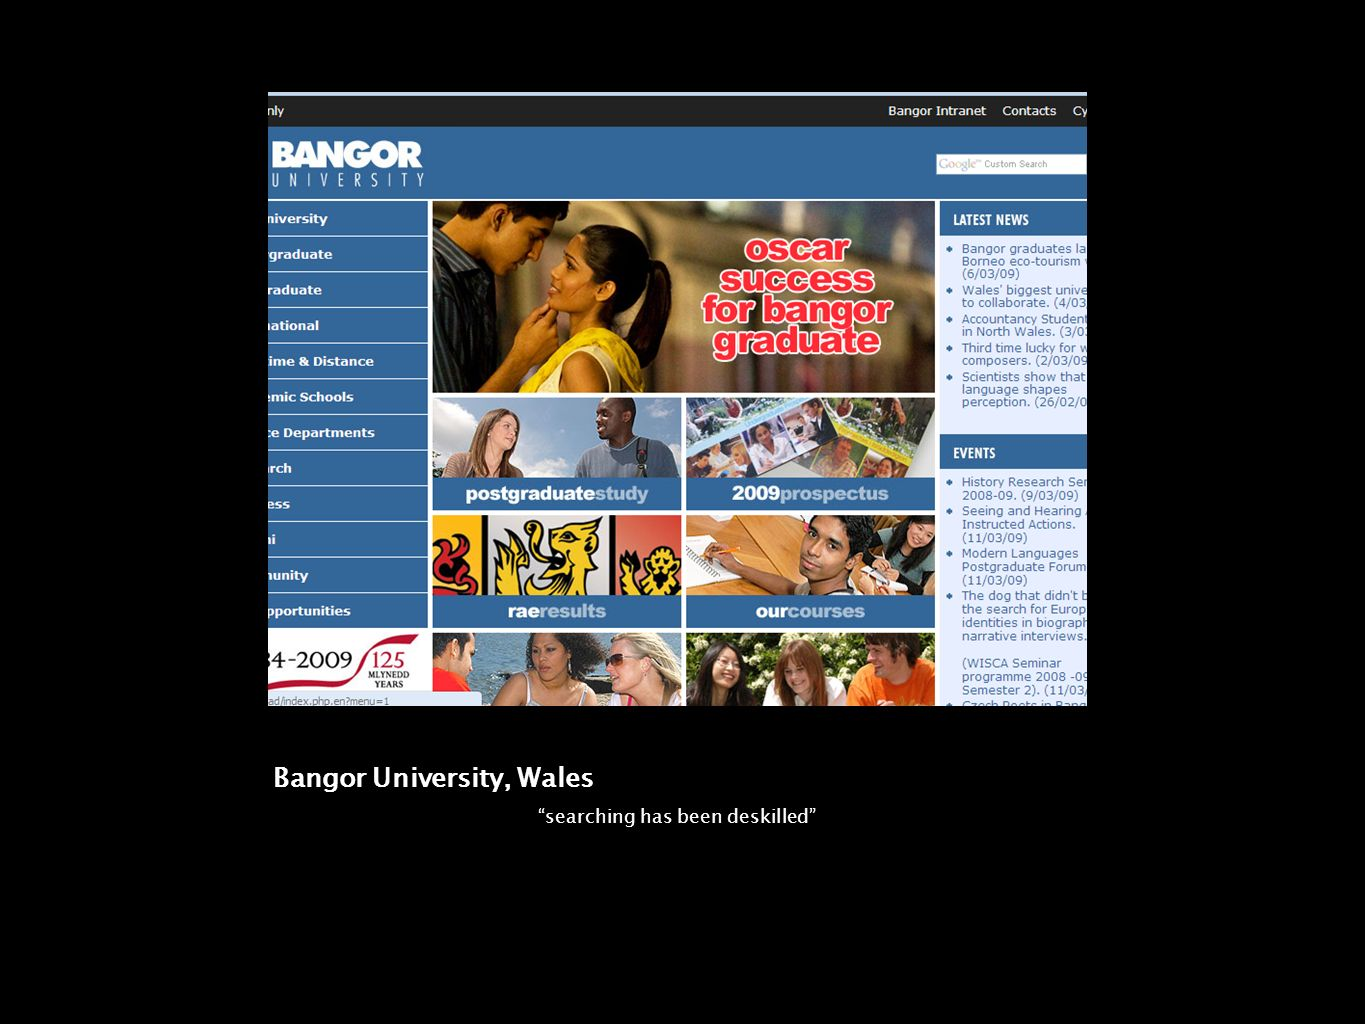 Bangor University, Wales searching has been deskilled